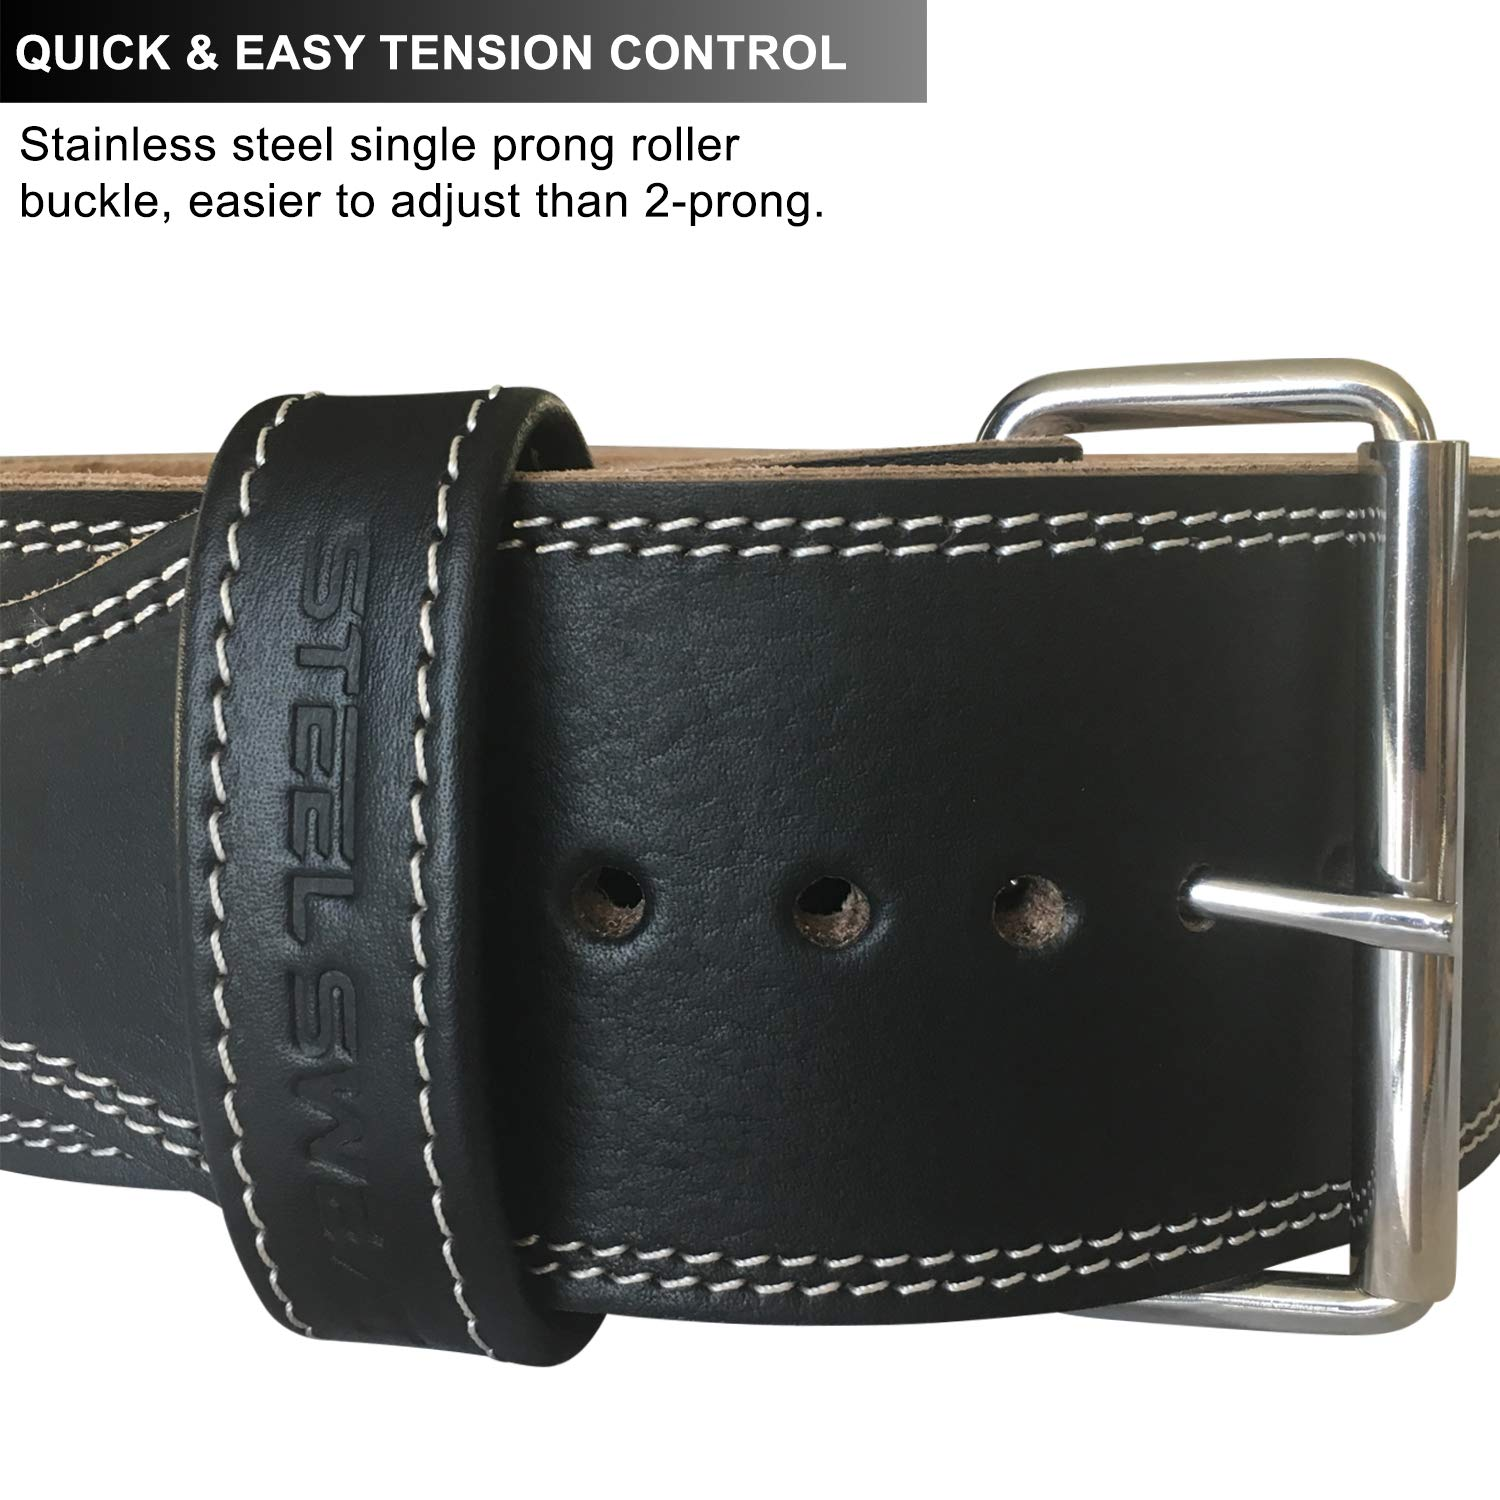 Steel Sweat Weight Lifting Belt - 4 Inches Wide by 10mm - Single Prong Powerlifting Belt That's Heavy Duty - Genuine Cowhide Leather - X-Large Texus by Steel Sweat (Image #5)